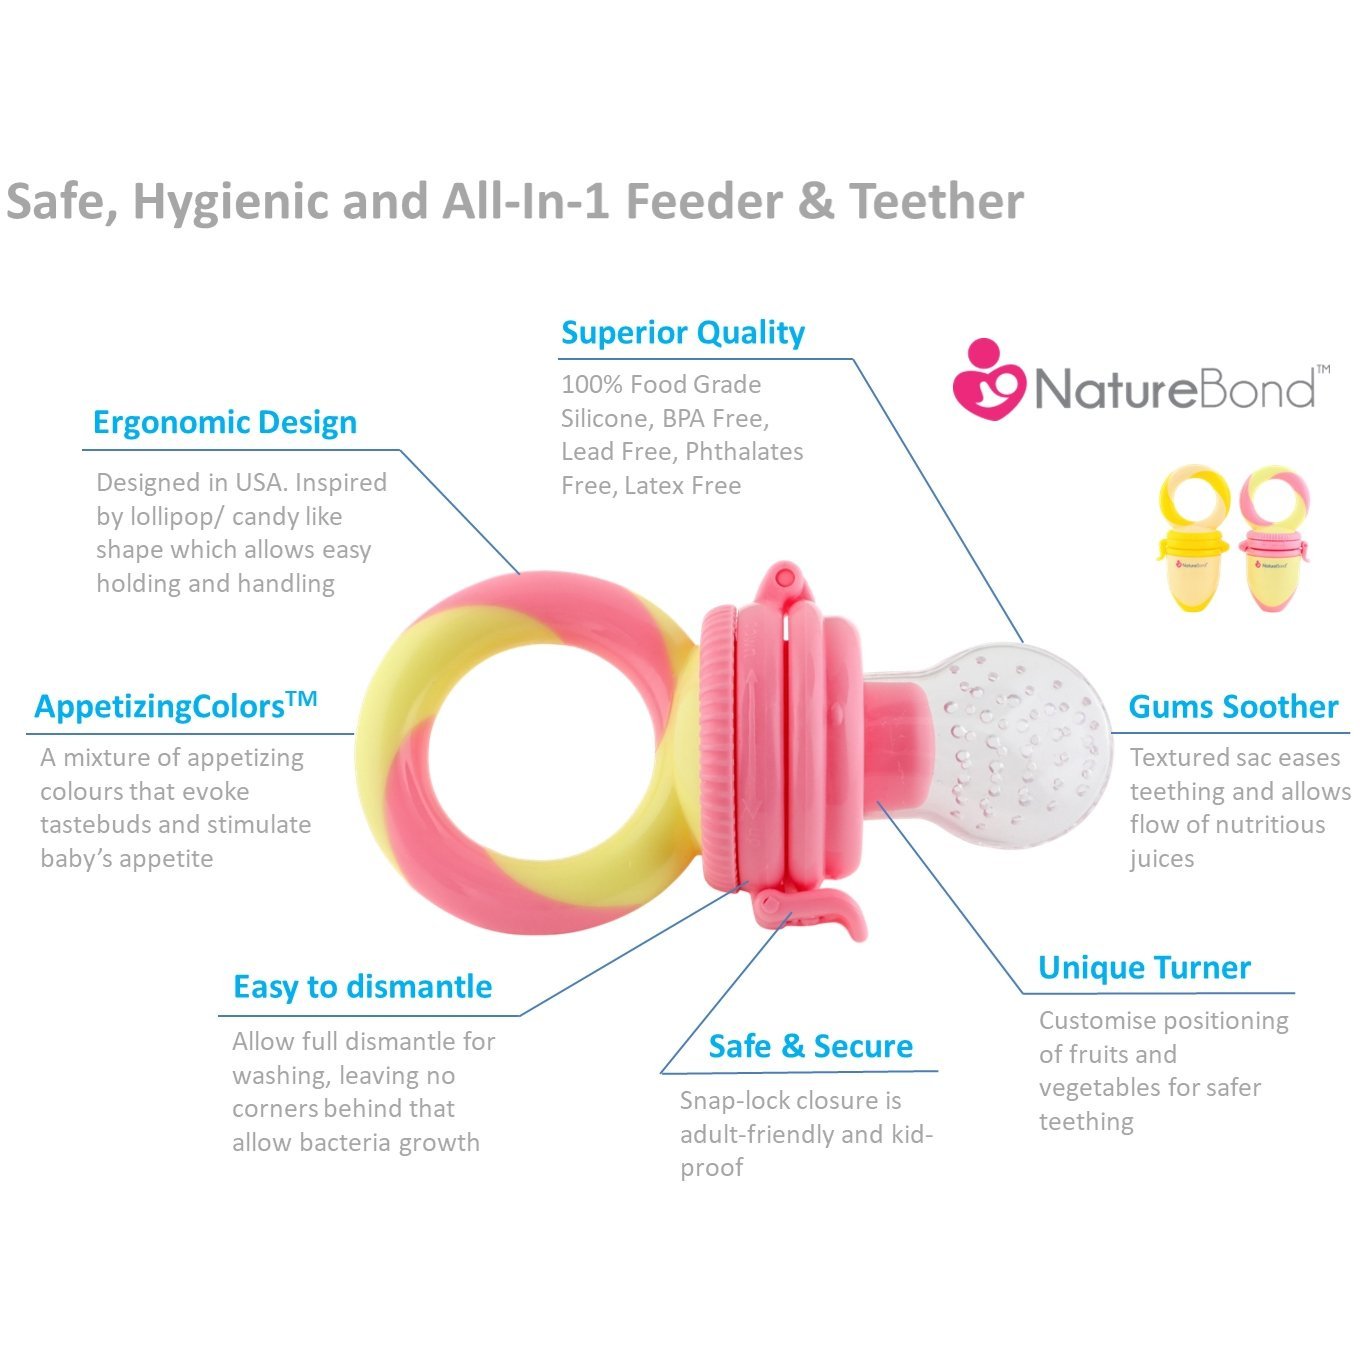 Naturebond Baby Food Feeder Fruit Pacifier 2 Black Box Stage Diagram Theater Feiderdesign Pack Infant Teething Toy Teether In Appetite Stimulating Colors Bonus Includes All